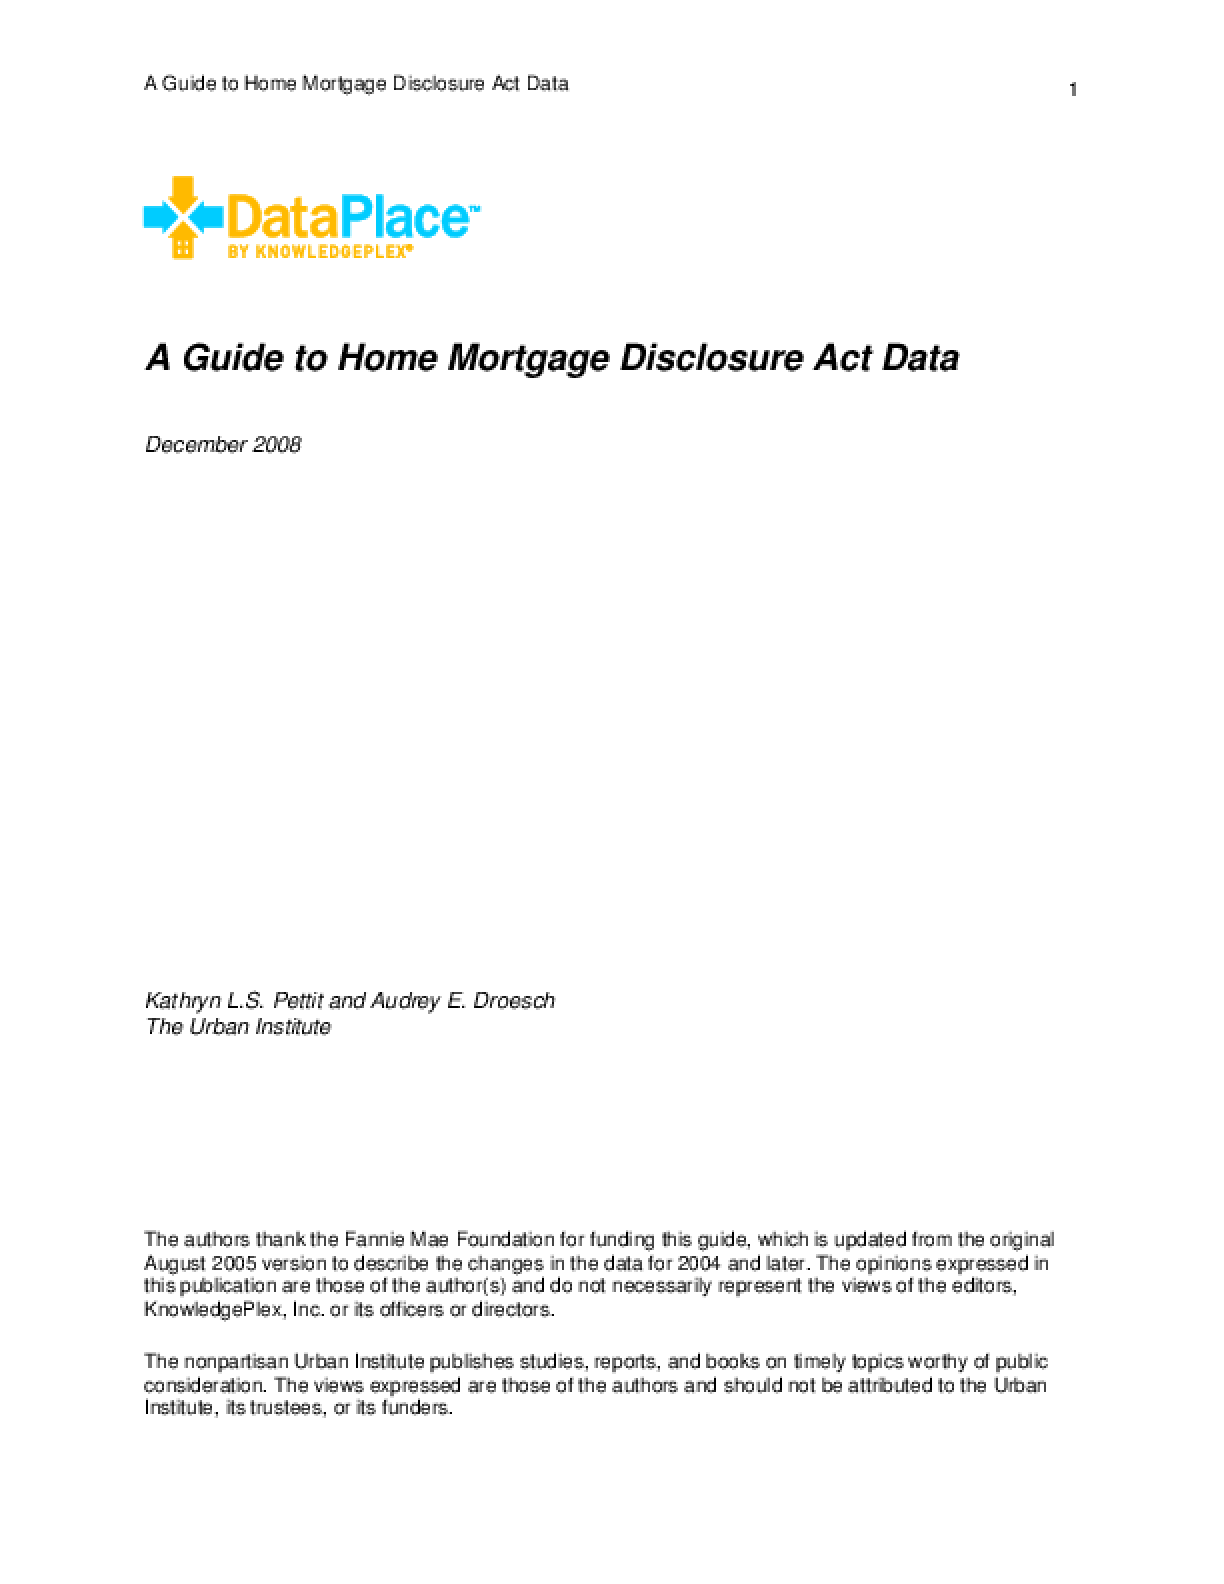 A Guide to Home Mortgage Disclosure Act Data